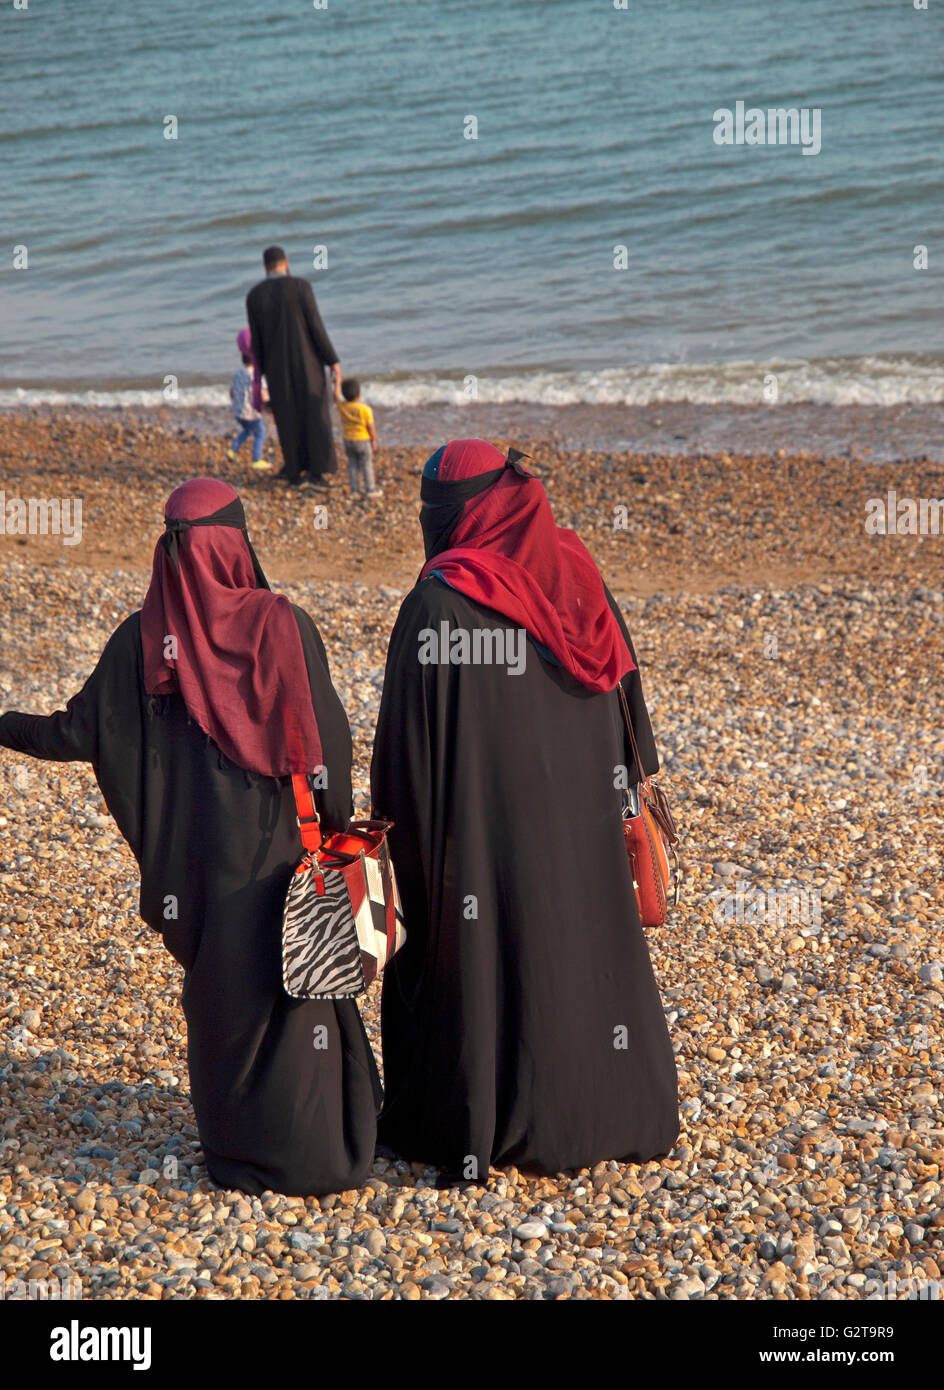 Burka clad Muslim women on Brighton beach - Stock Image